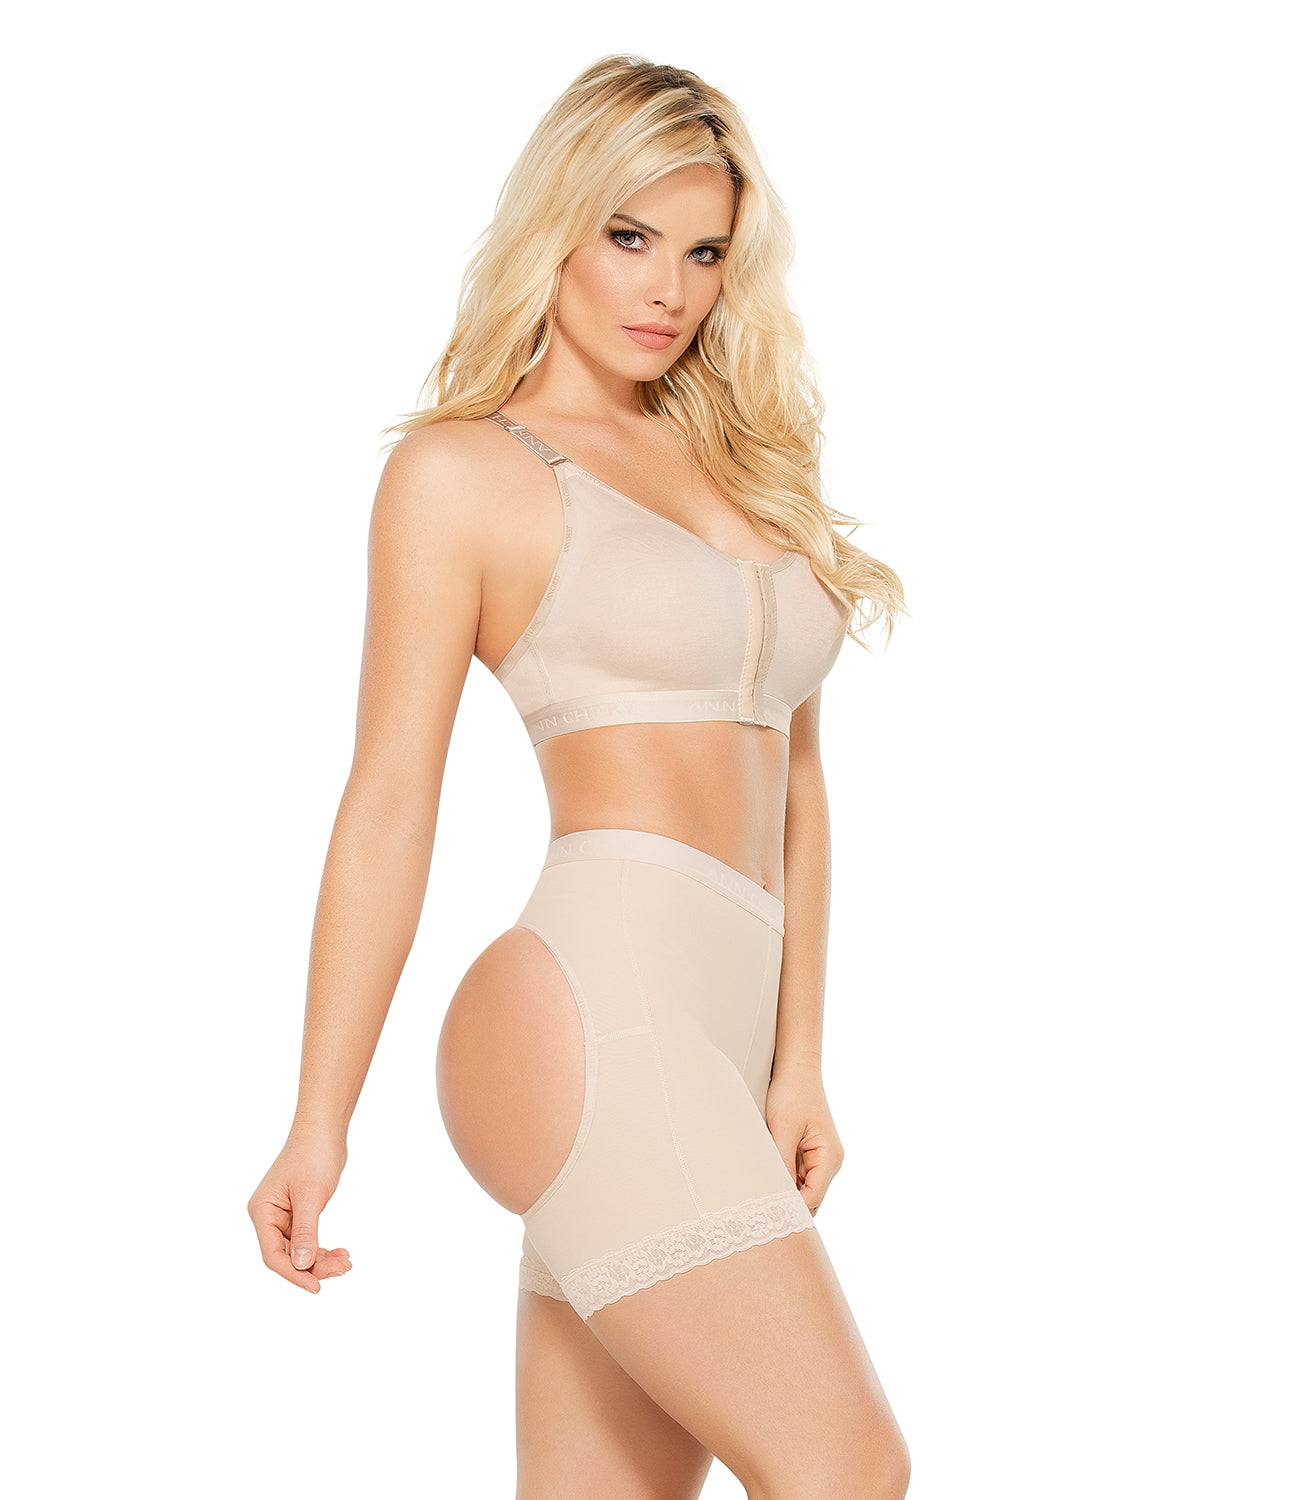 Ann Chery 1045 Amalia Women Compression Shorts Thigh Shapers Butt Lifter